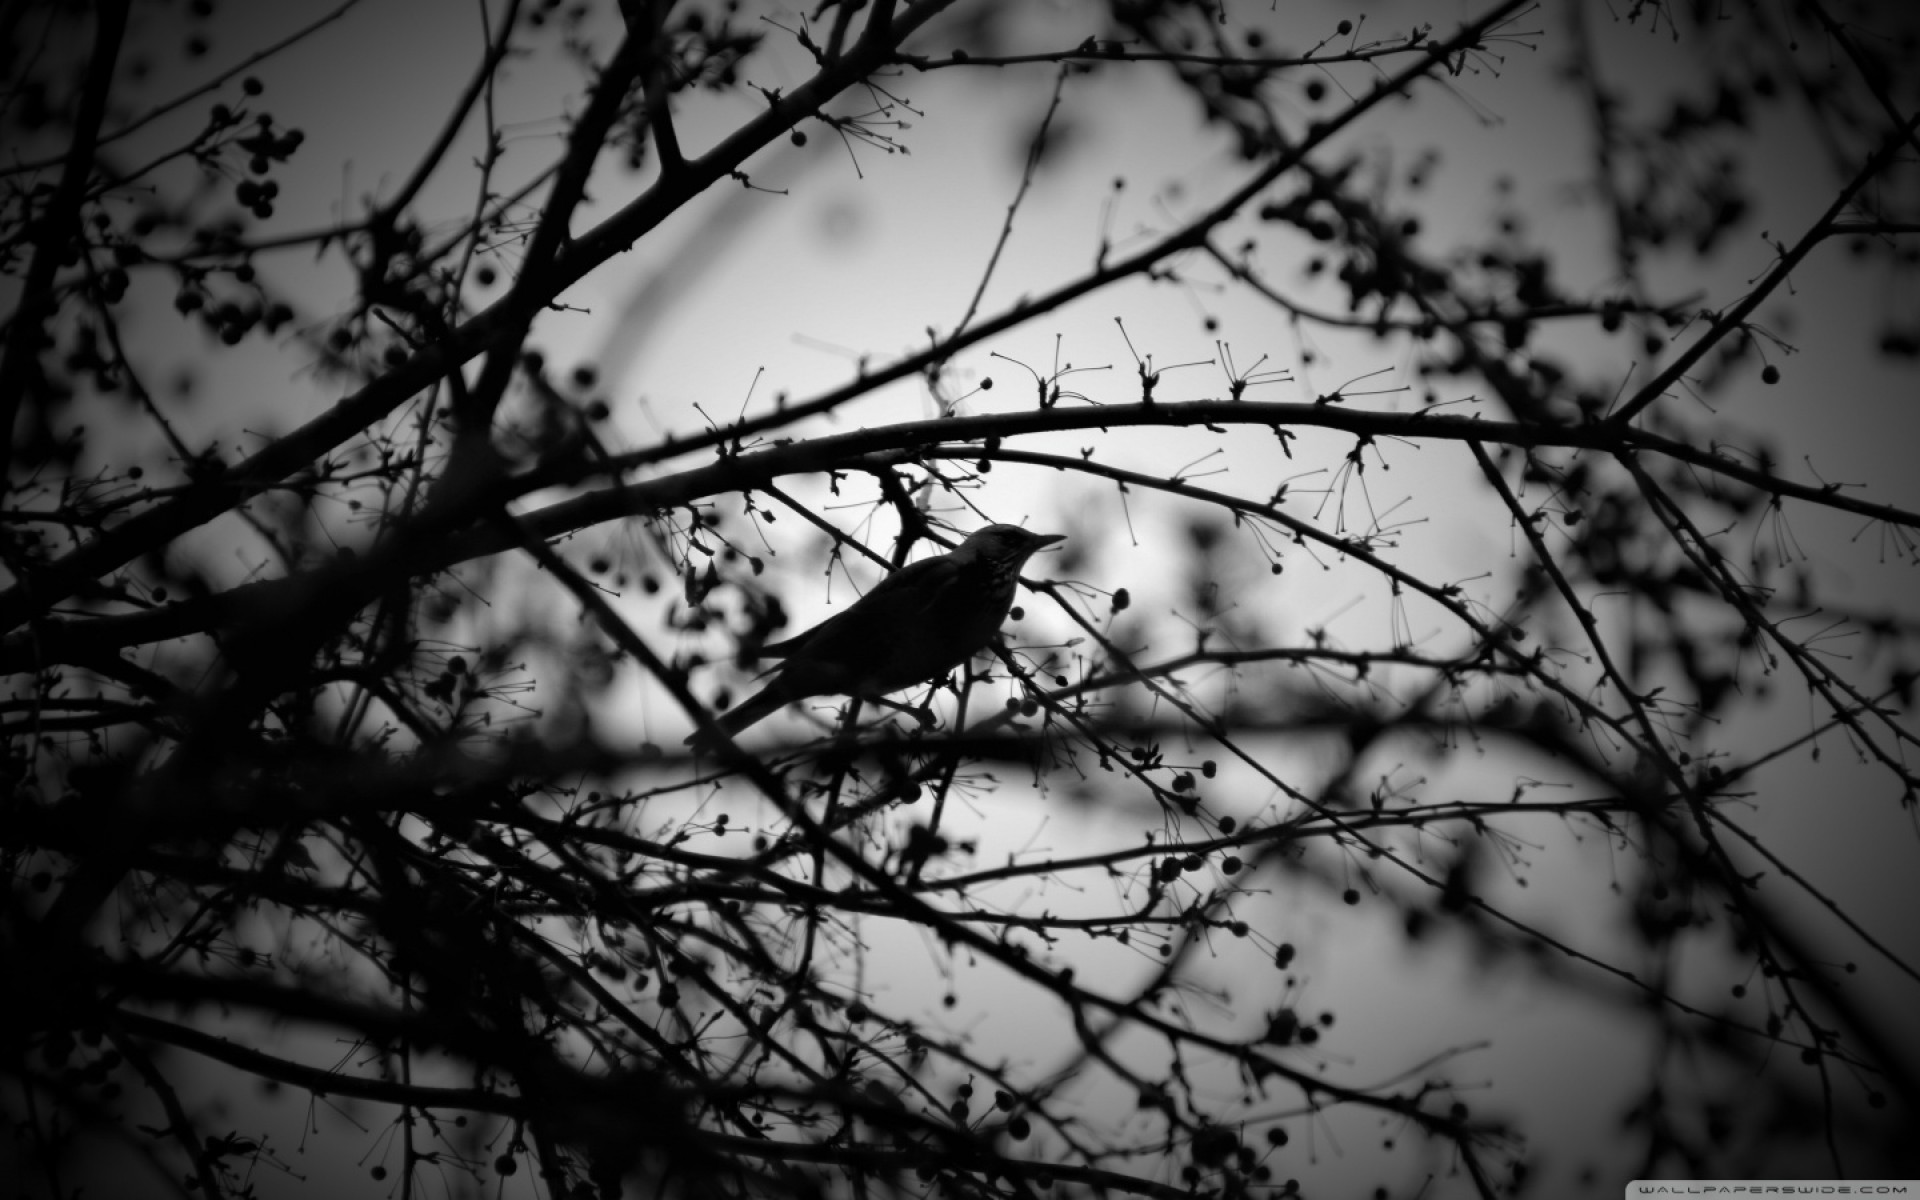 Black And White Bird And Tress Wallpaper for Desktop and Mobiles